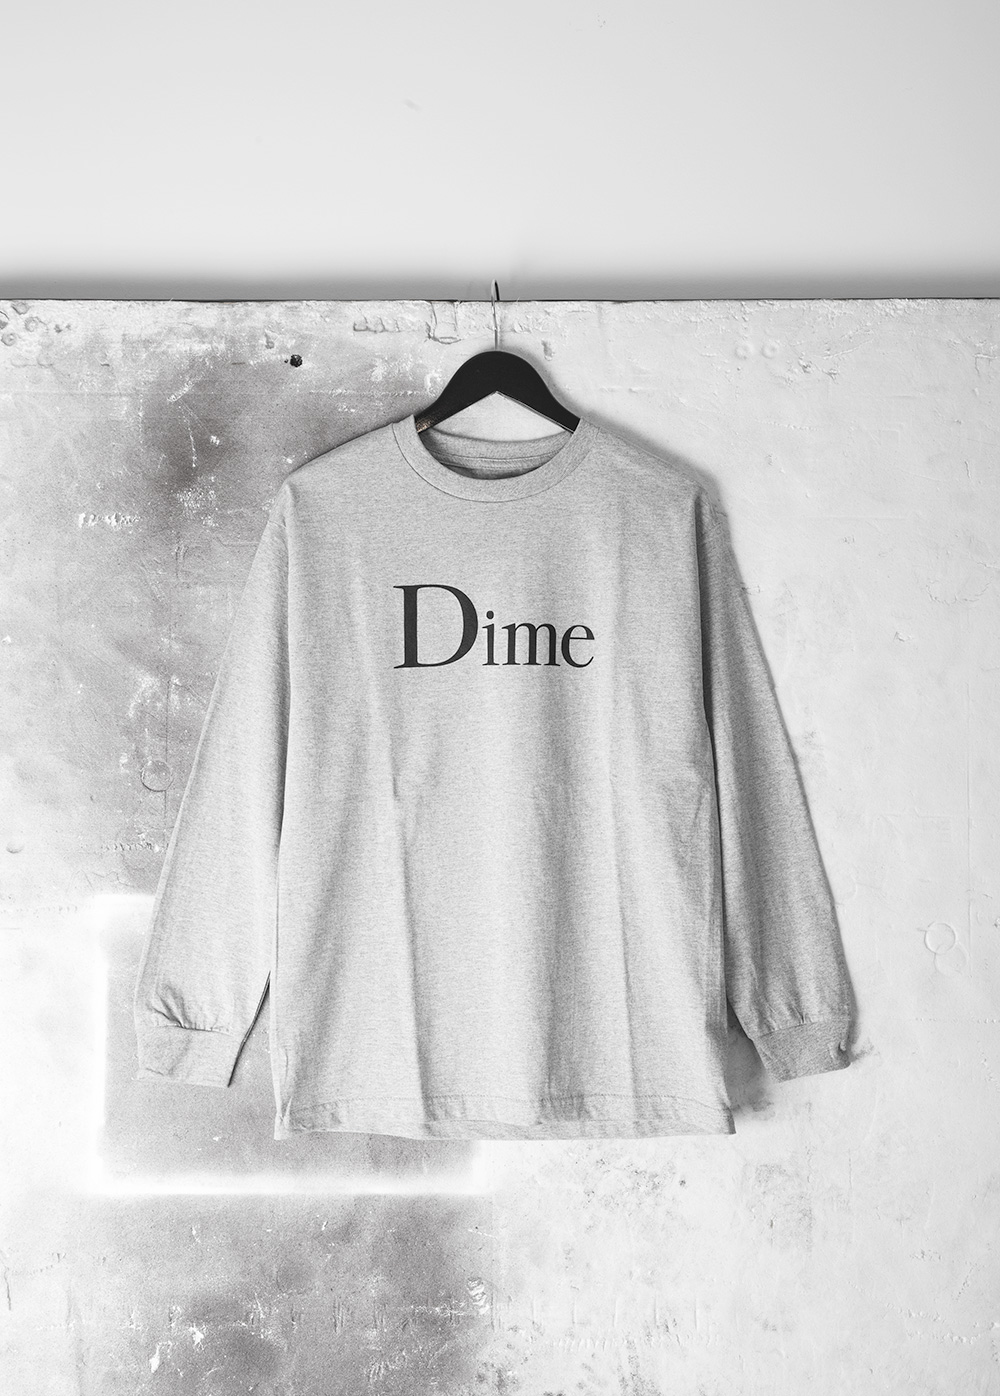 Shop the latest arrivals from DIME MTL at Streetmachine.com